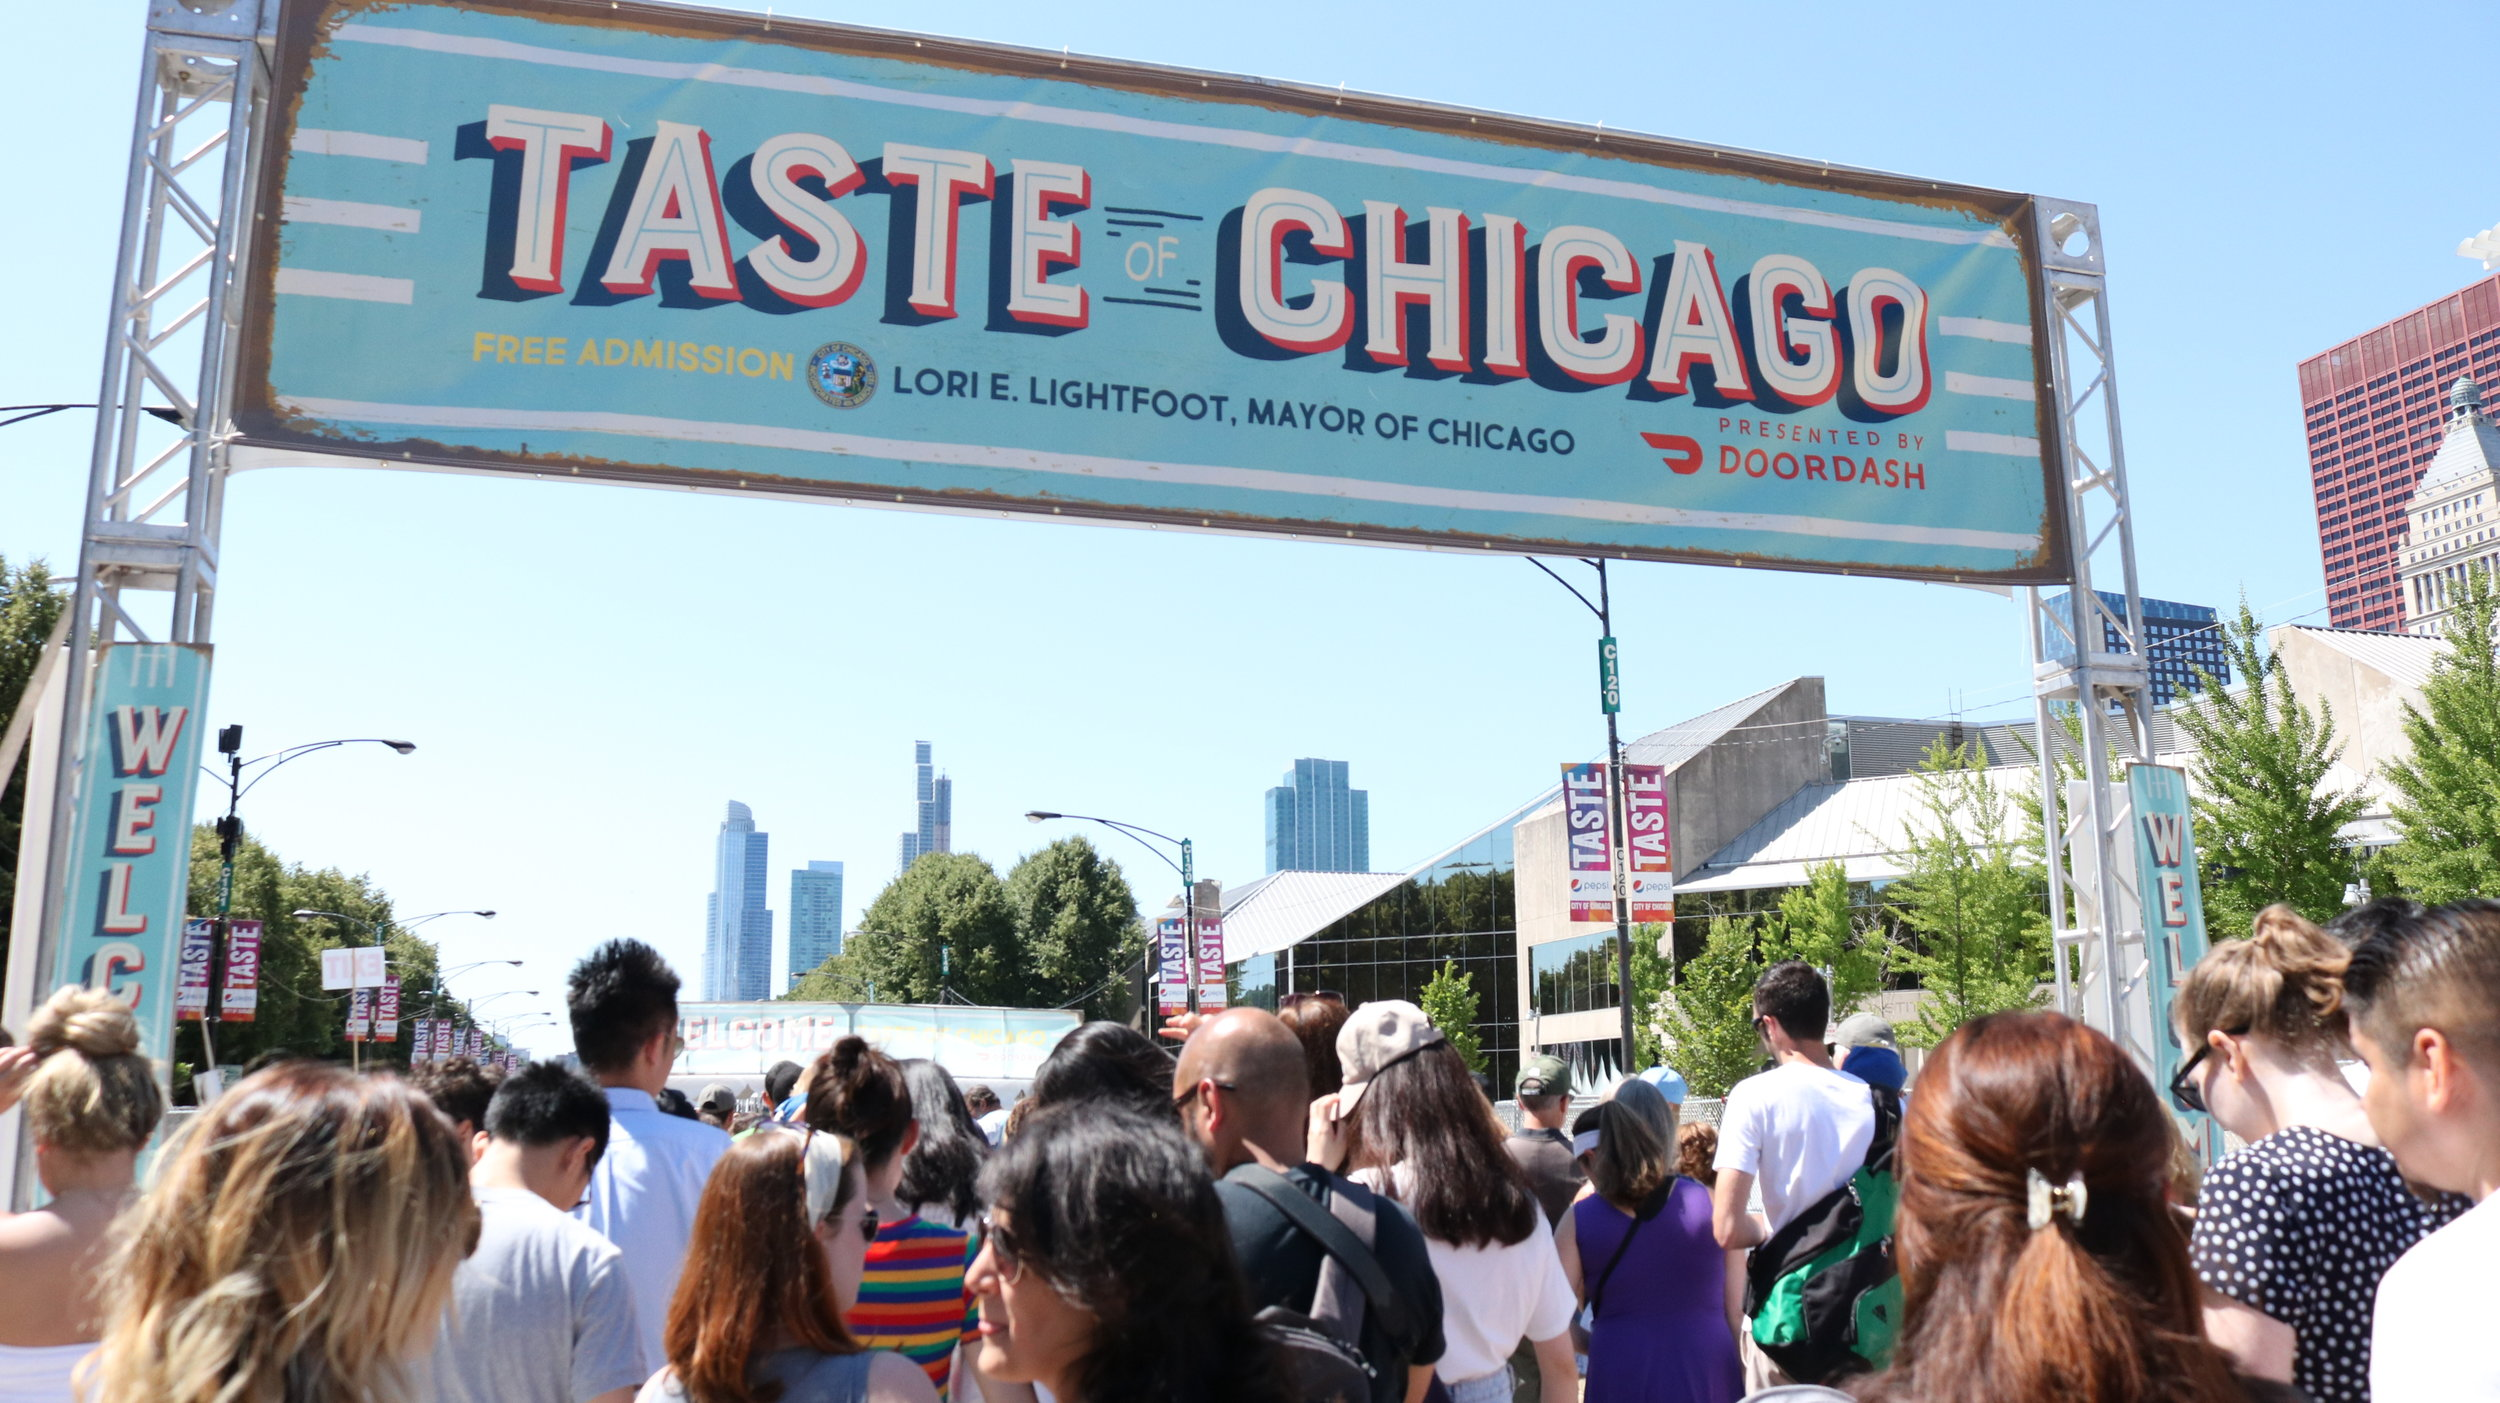 Entrance of the Taste of Chicago on Friday, June 12, 2019. The Taste of Chicago festival opened to the public while the crowd started to get in line. Photo by Estefania Navarrete